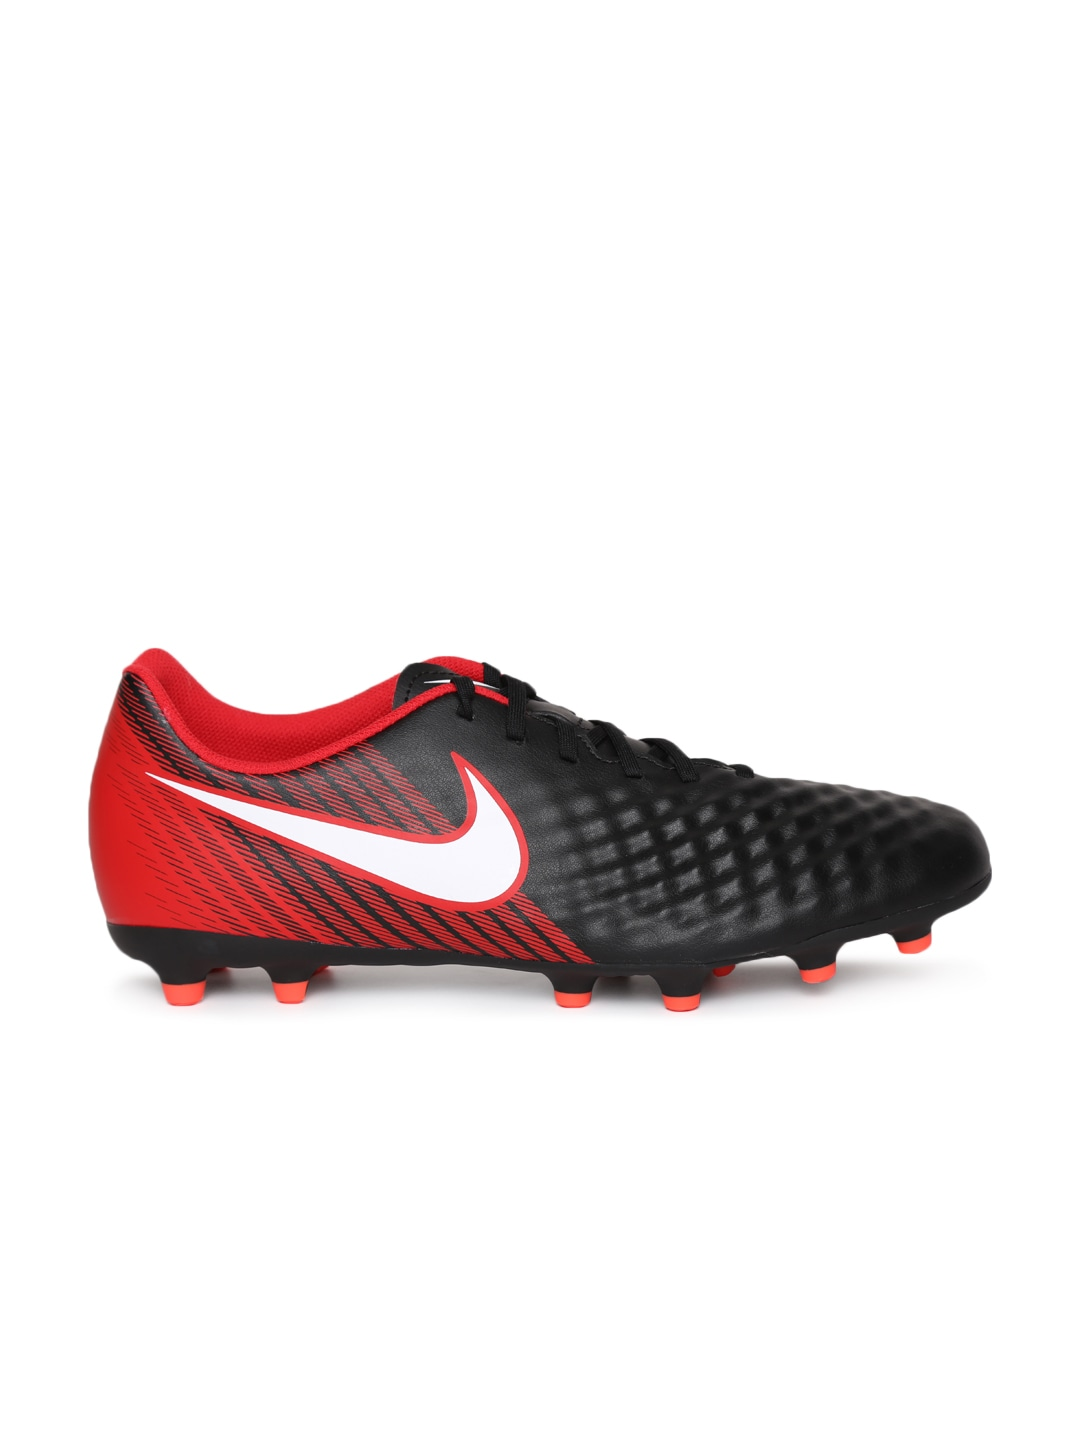 mens football studs nike training outfit